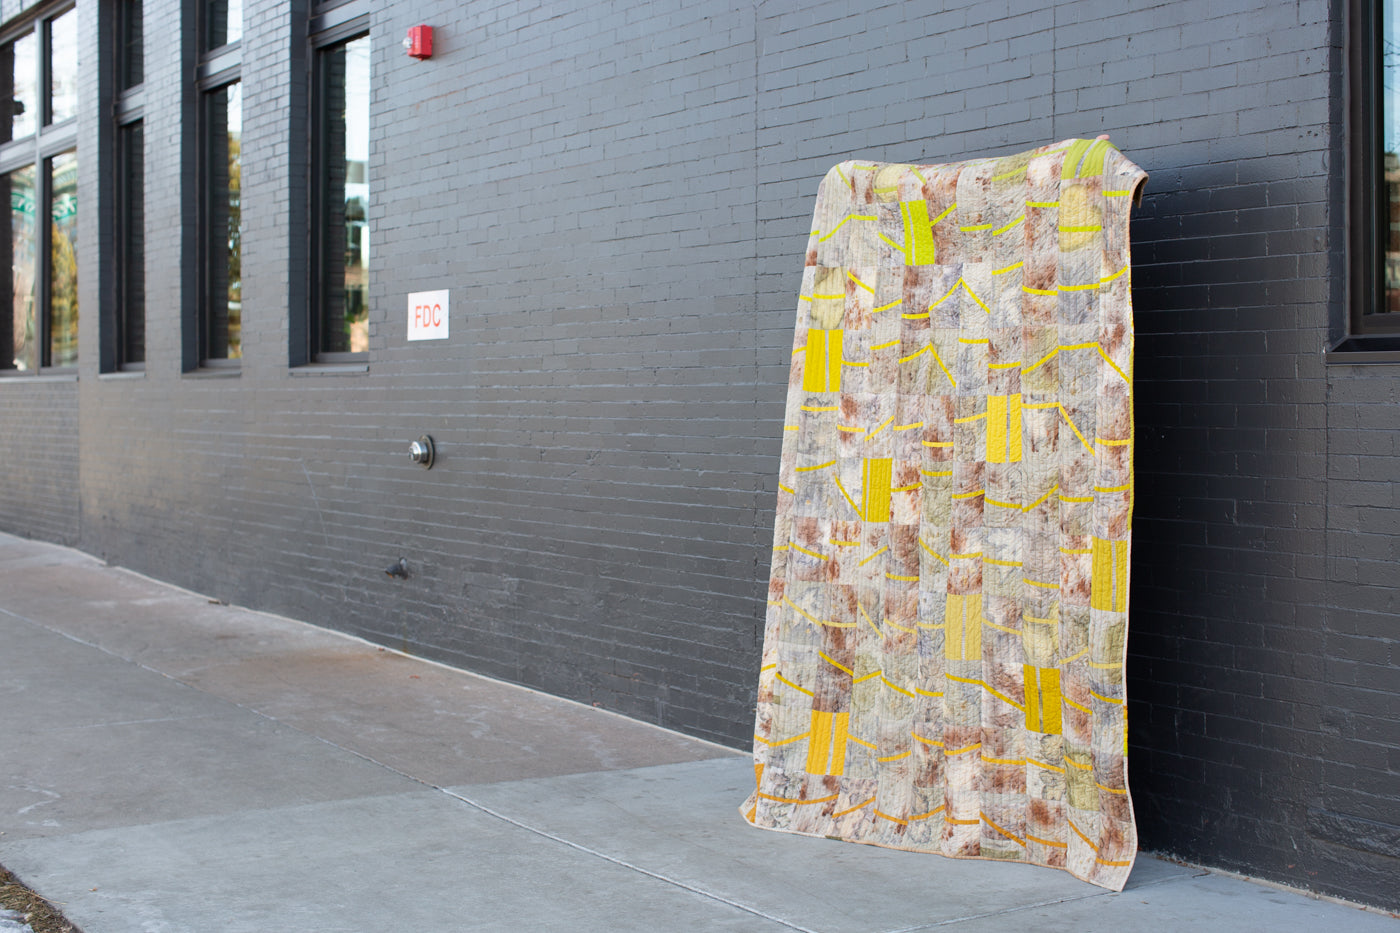 Quilt being held up to show the front of the quilt on a city sidewalk against a dark grey building.  The quilt is multi colored with brown, green, yellow and red hues.